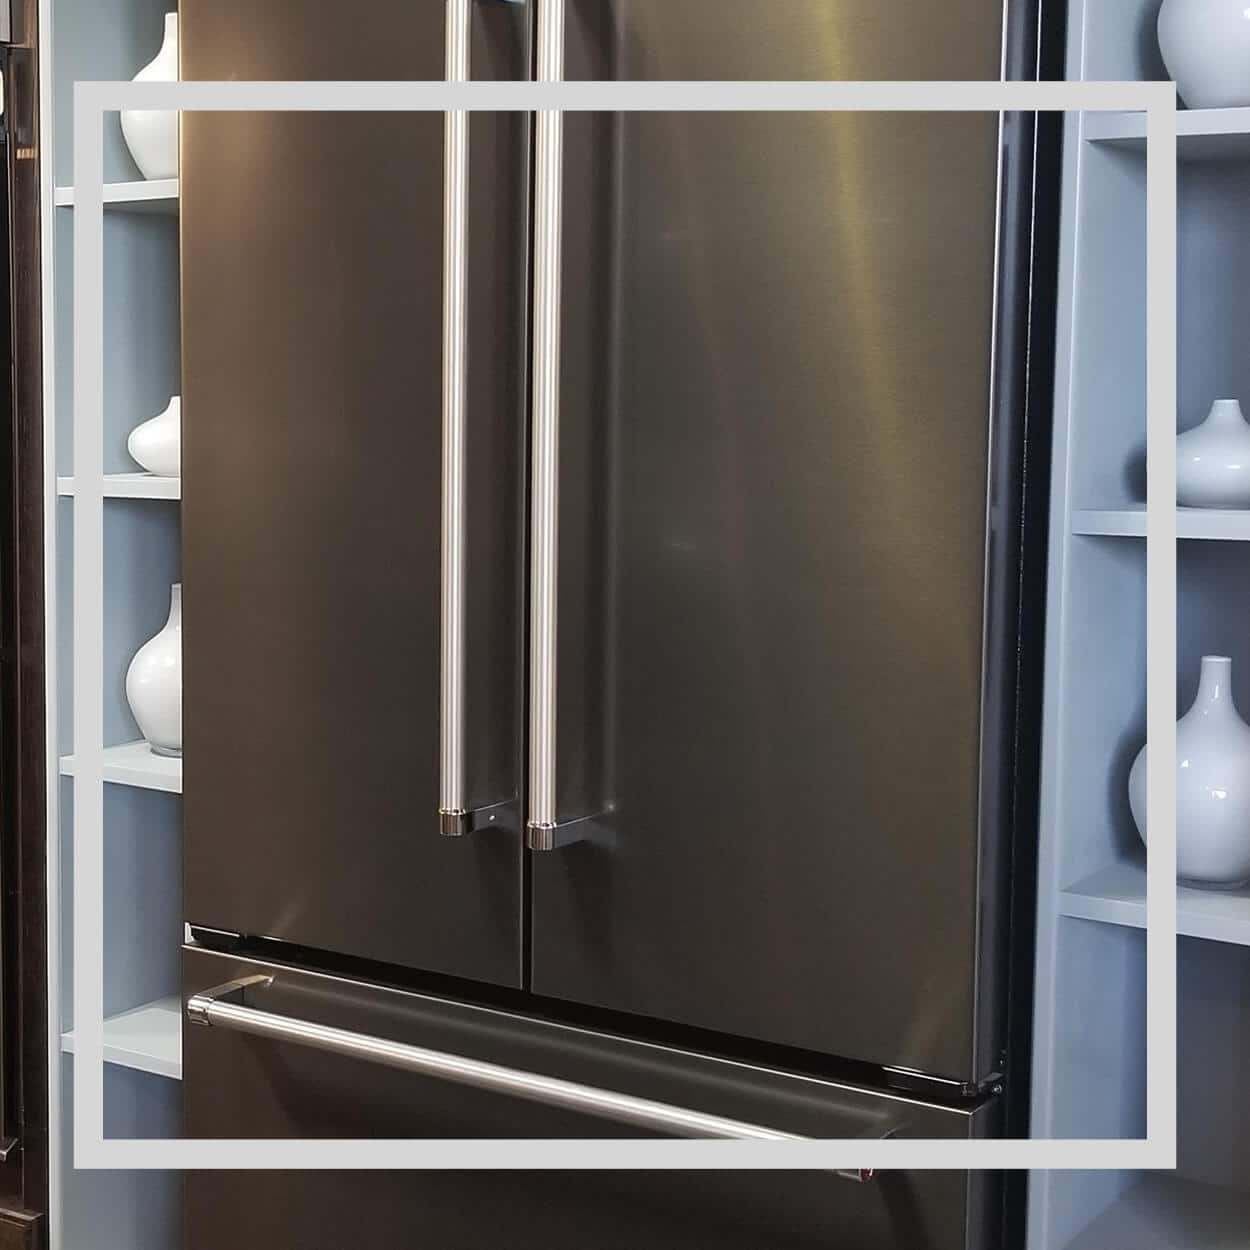 Capital Distributing has KitchenAid Refrigerators | Call Us 214.638.2681